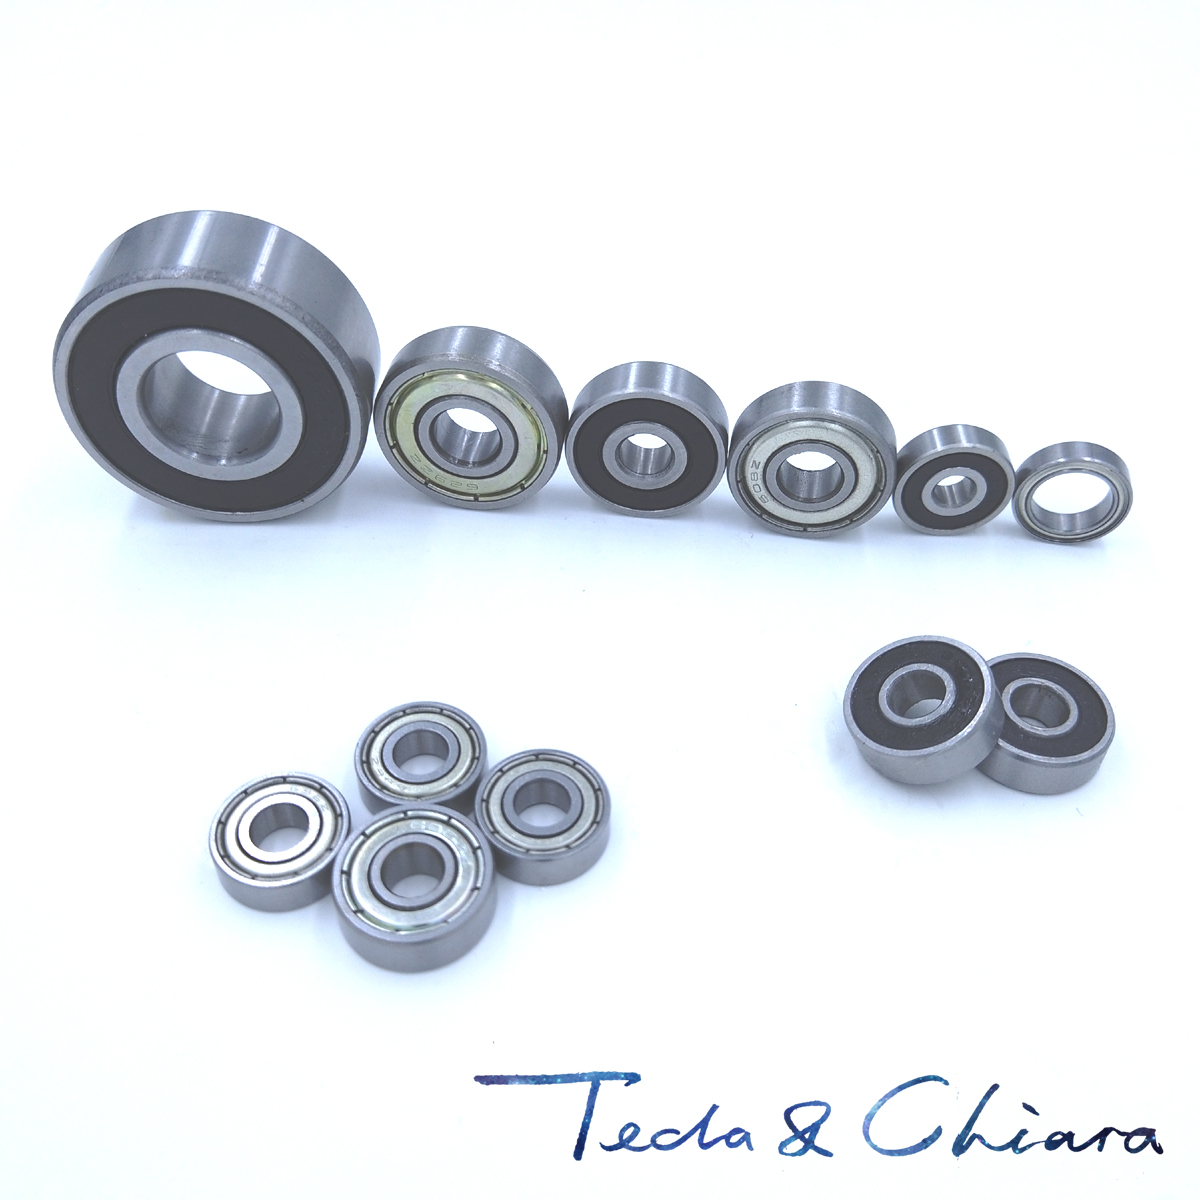 10Pcs 1Lot 698 698ZZ 698RS 698-2Z 698Z 698-2RS ZZ RS RZ 2RZ Deep Groove Ball Bearings 8 x 19 x 6mm image